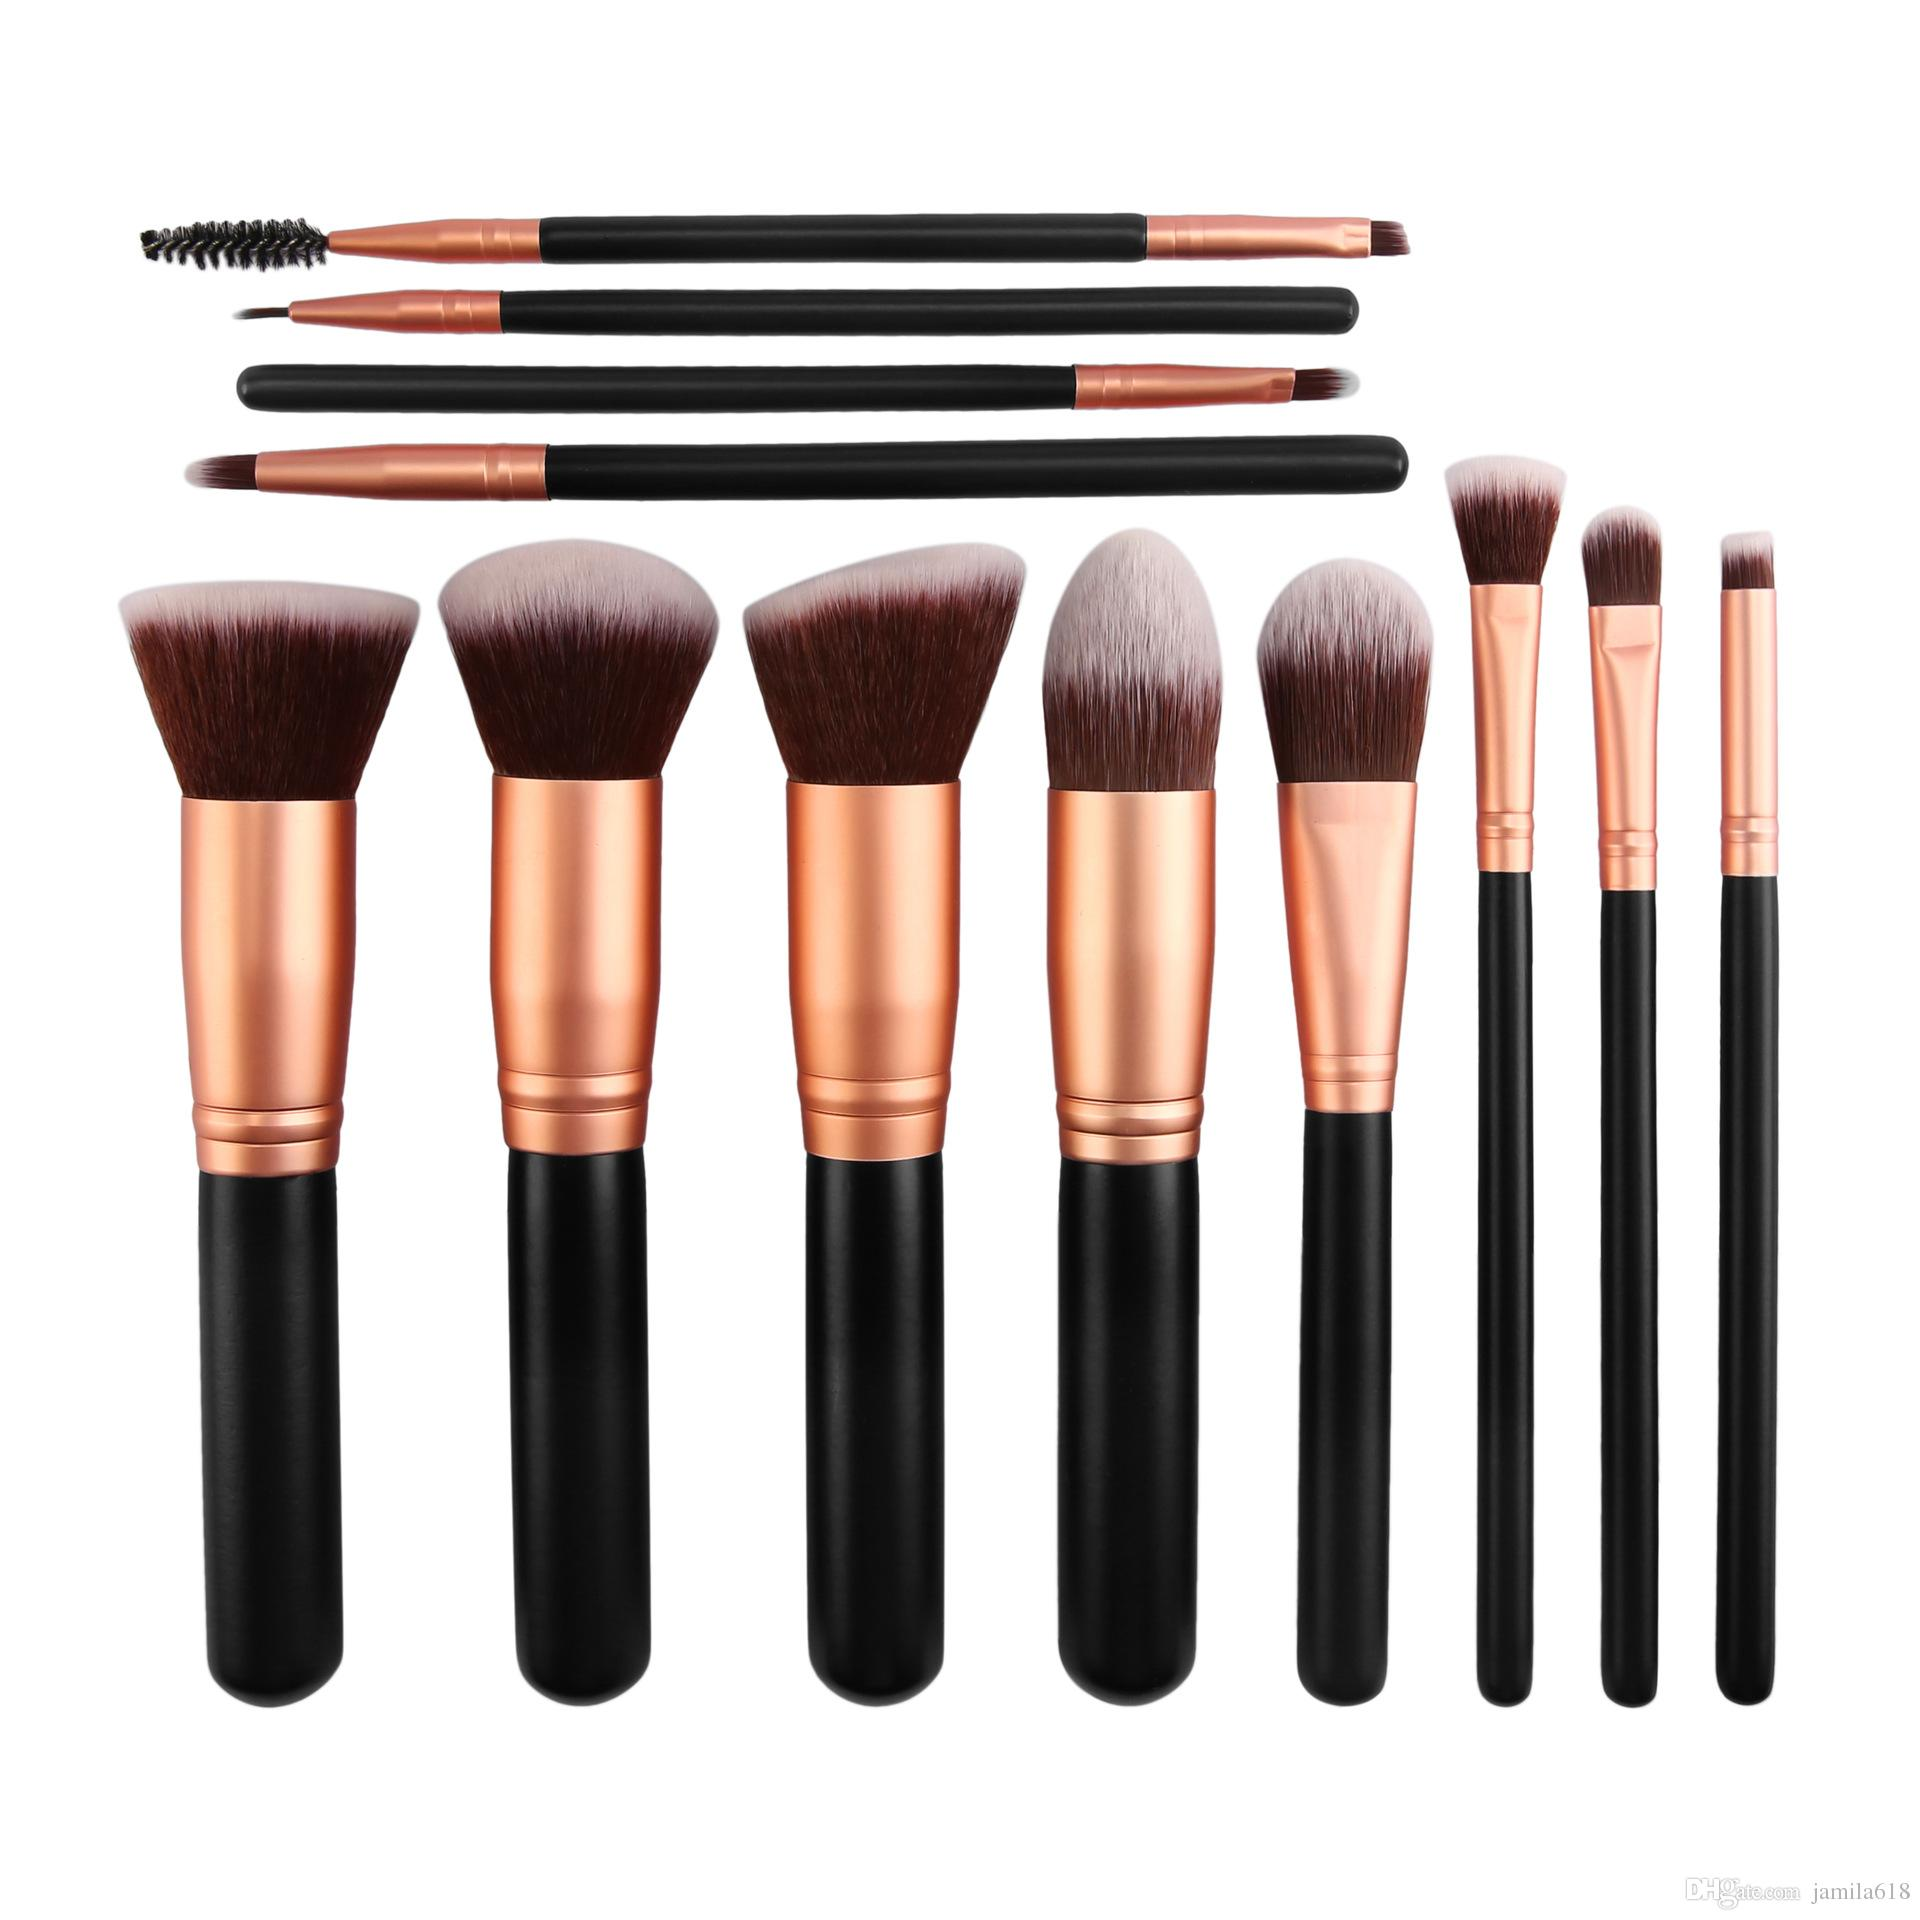 12Pcs Multi-funzionale professionale manico in legno pennelli trucco Set Cosmetic Foundation Blush Eye Shadow Blending Make up Brushes Tool